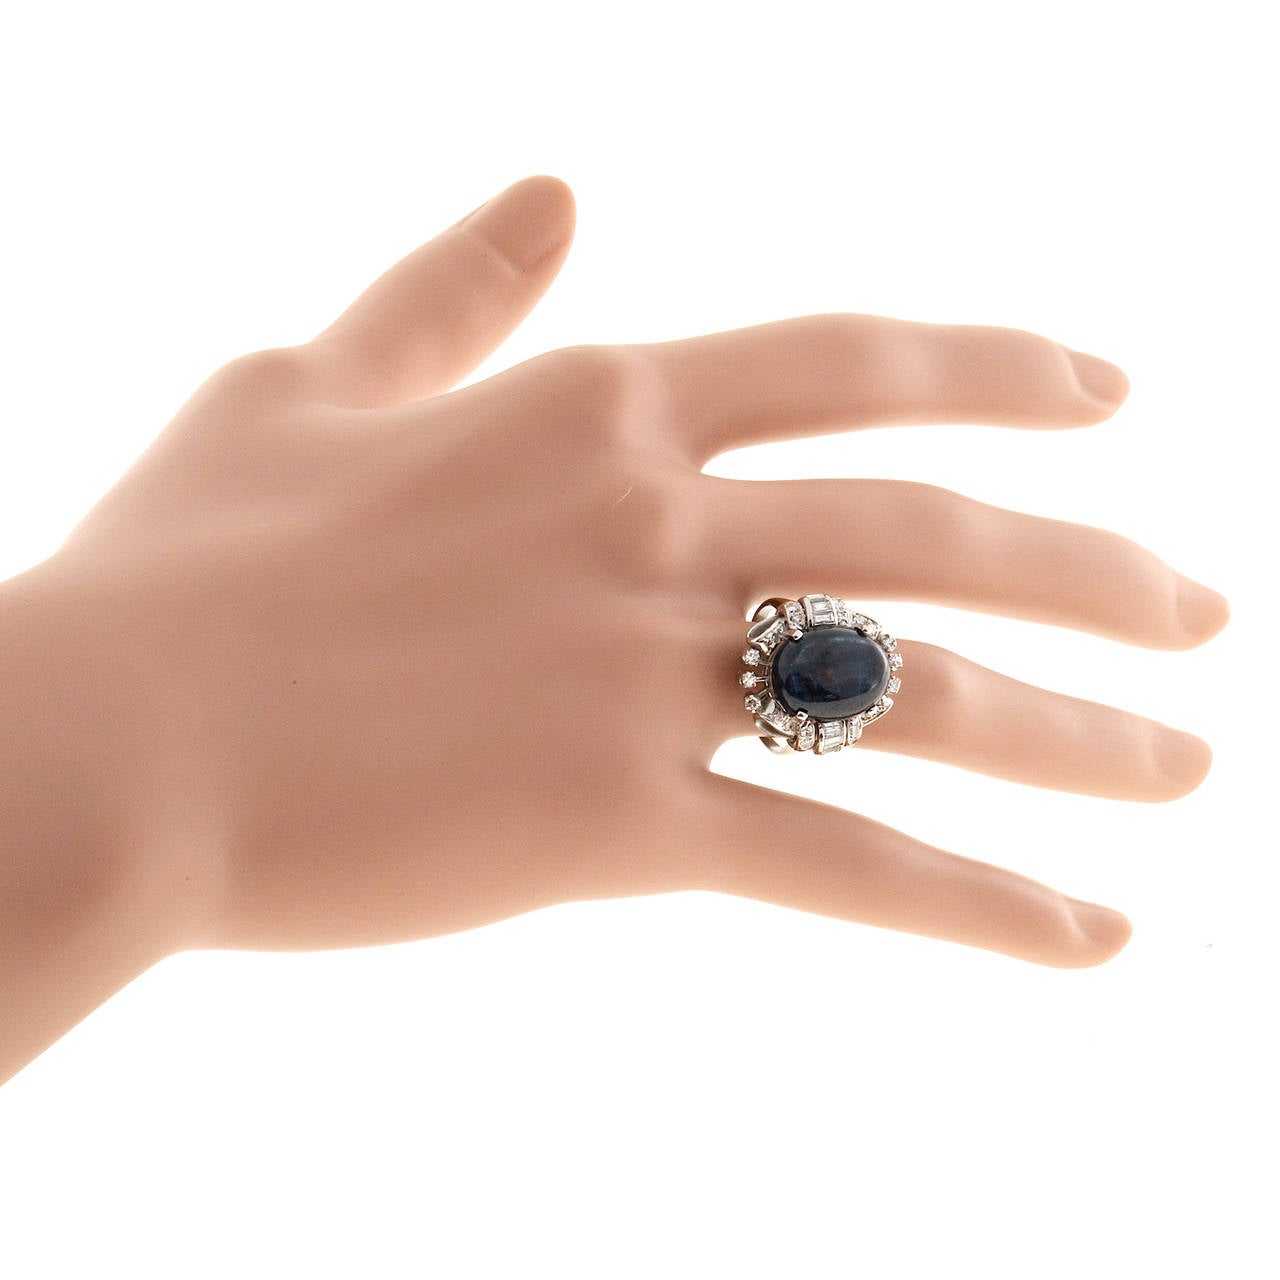 Oval Cabochon Sapphire Diamond Gold Cocktail Ring For Sale 4